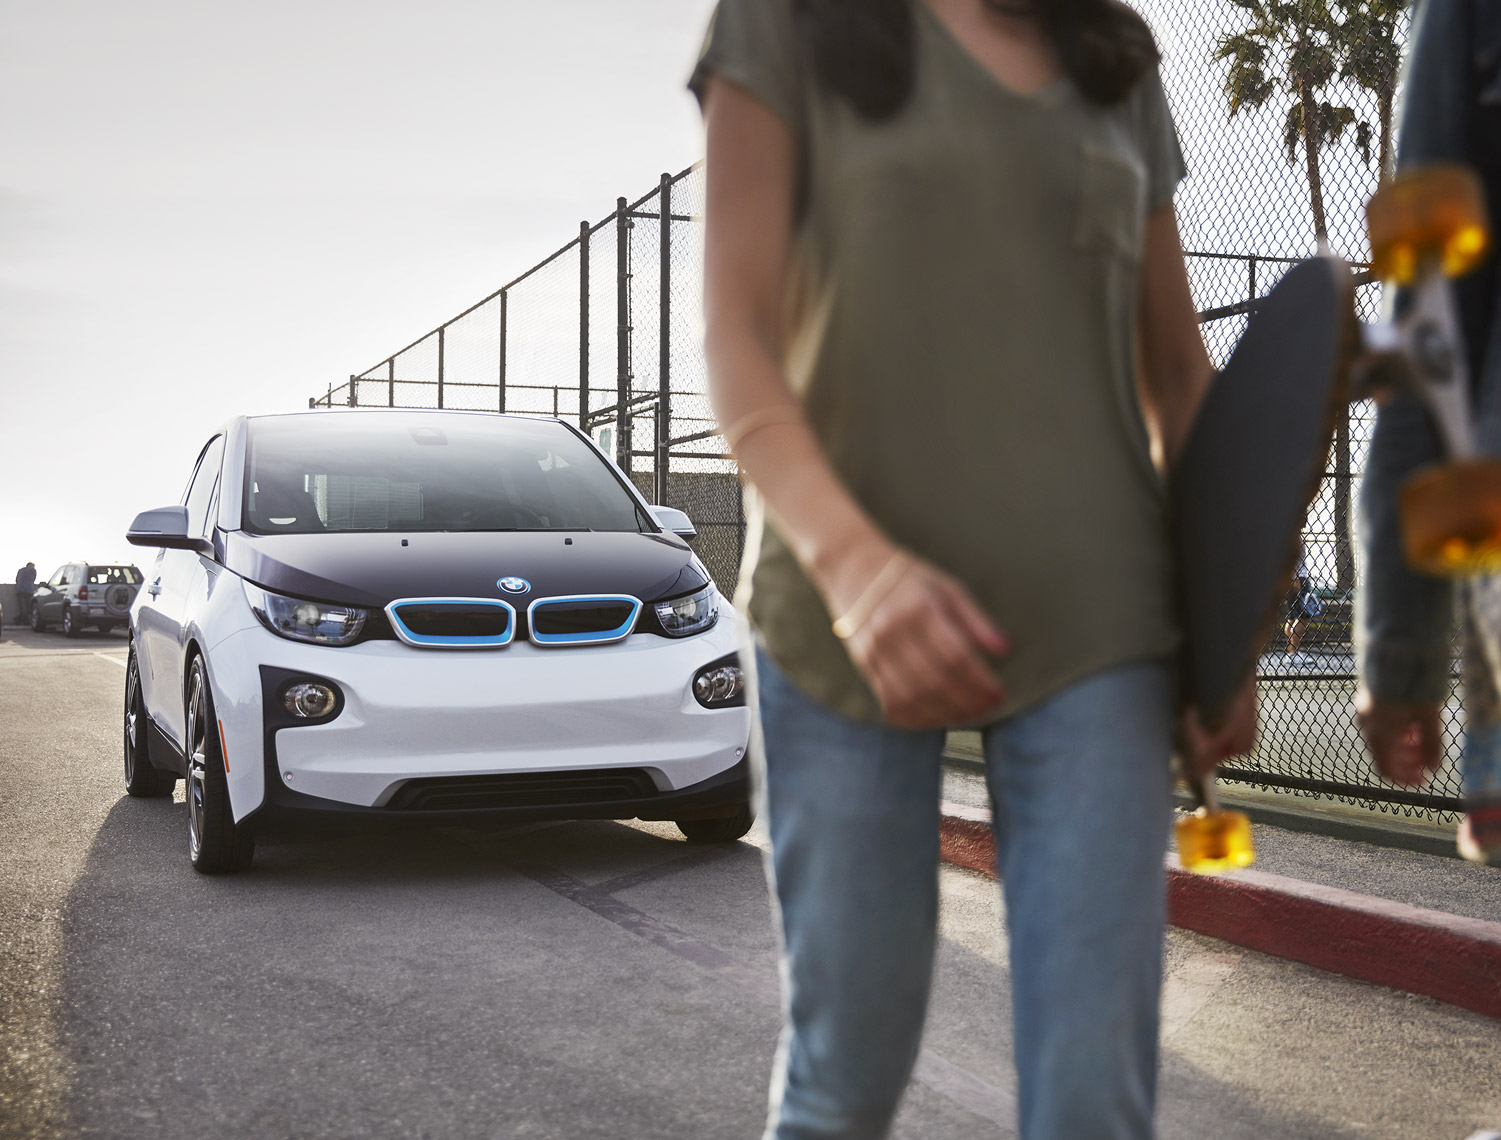 Christopher Nelson Photography|BMWi3|Lifestyle|Skate Board|Venice Beach